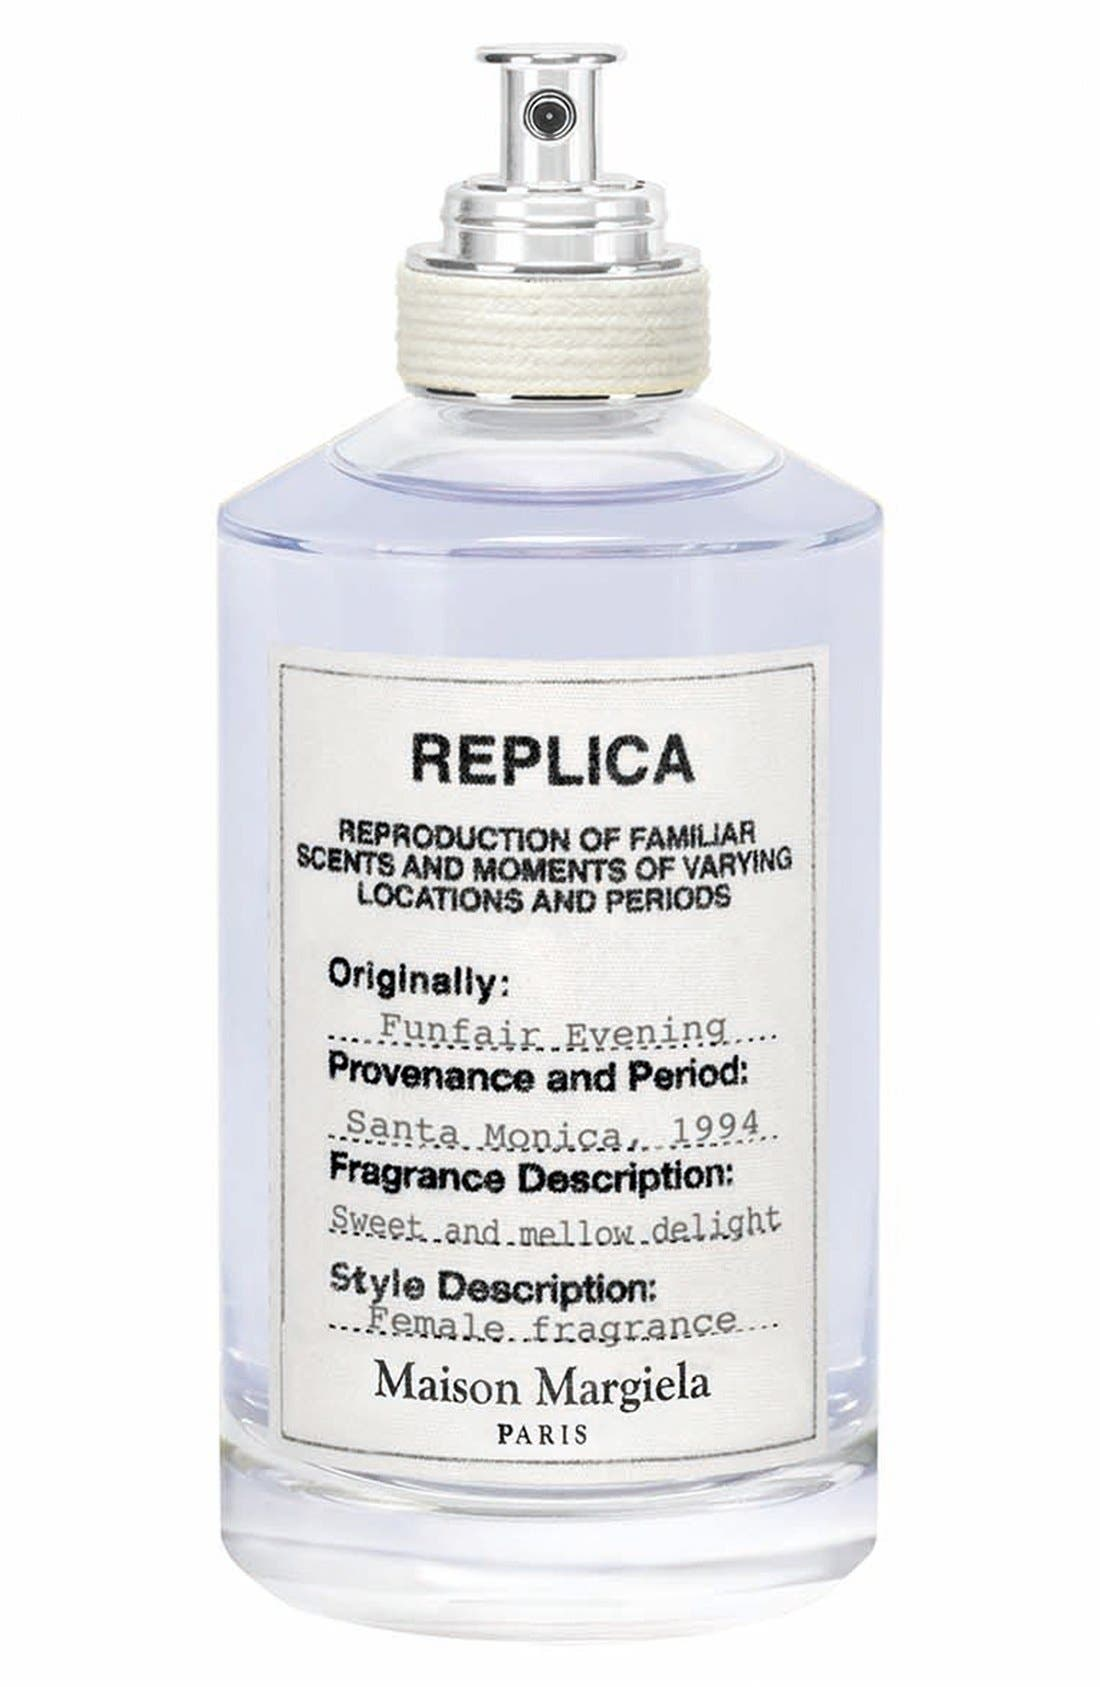 Maison Margiela Replica Funfair Evening Fragrance